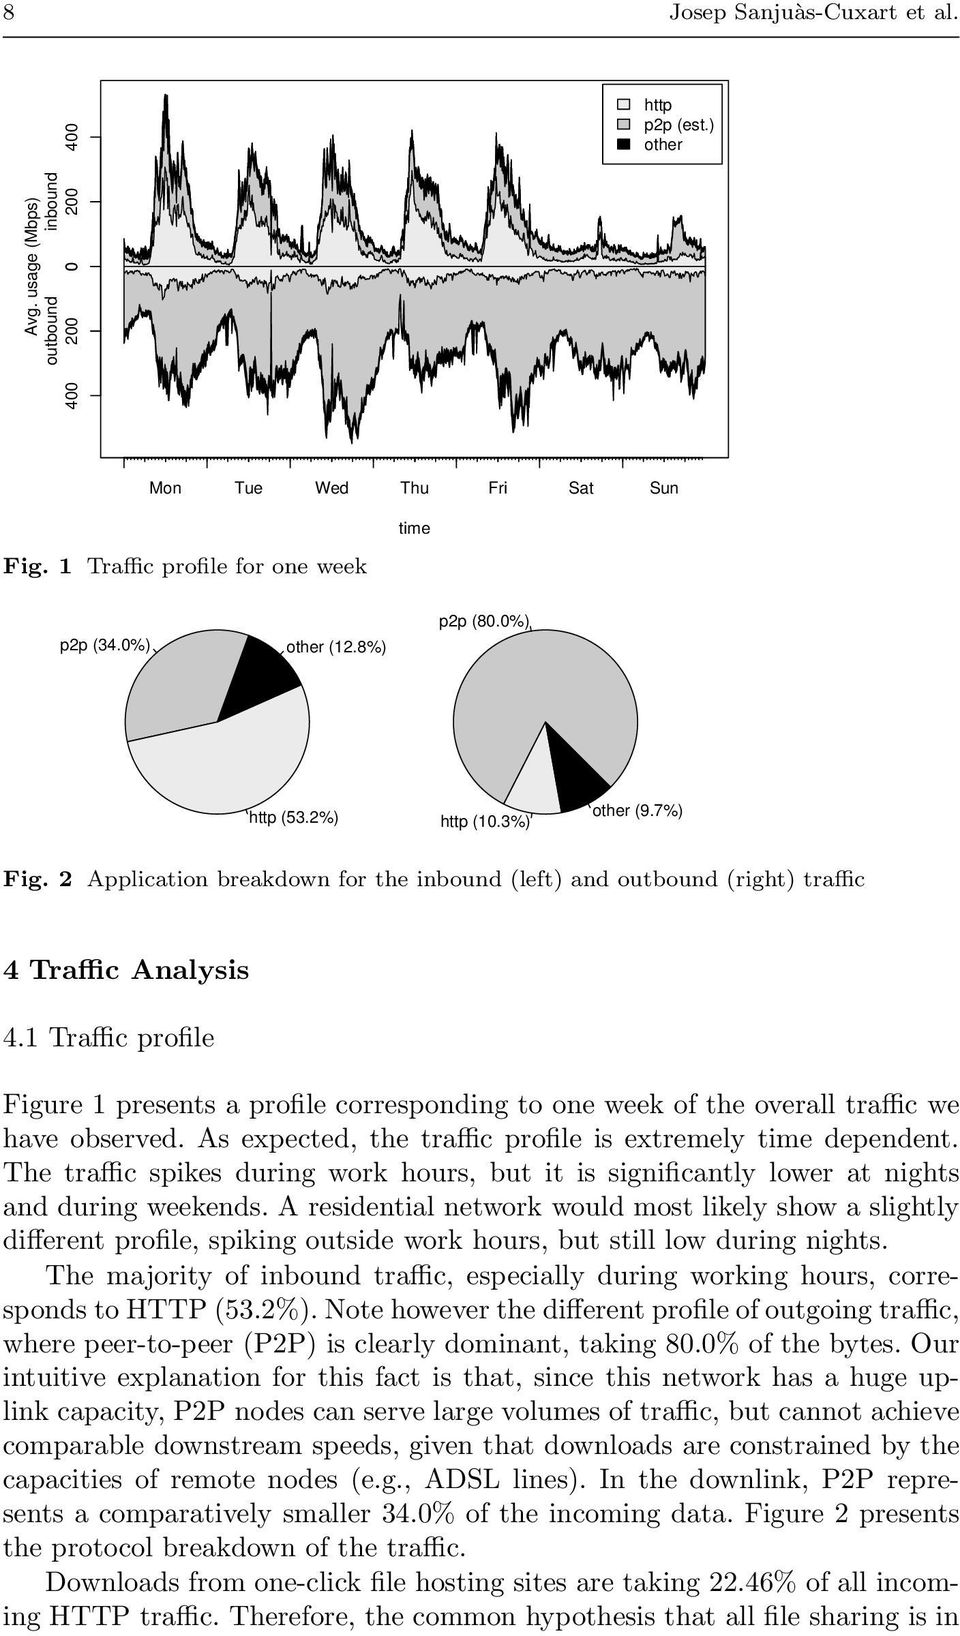 1 Traffic profile Figure 1 presents a profile corresponding to one week of the overall traffic we have observed. As expected, the traffic profile is extremely time dependent.